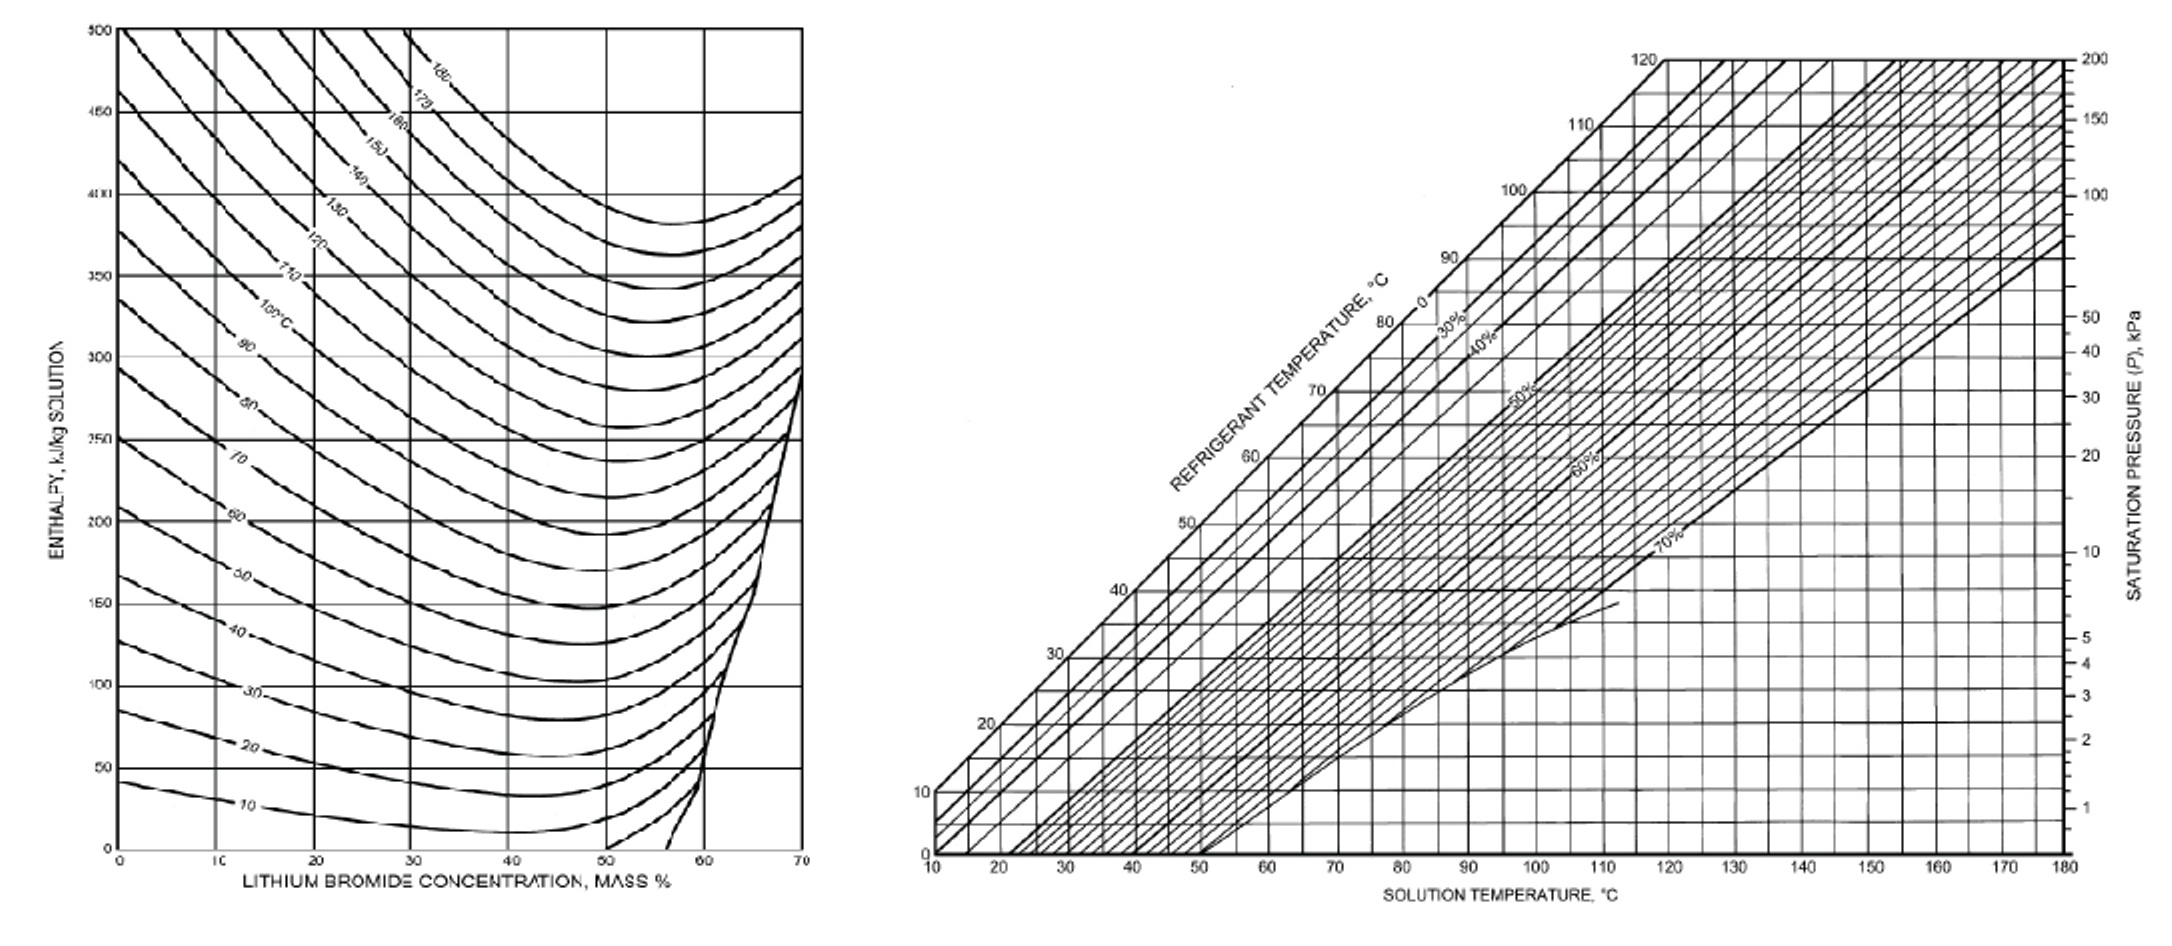 Curvature Of The Earth Calculator Calculation Of Enthalpy And Librh2o Concentration From